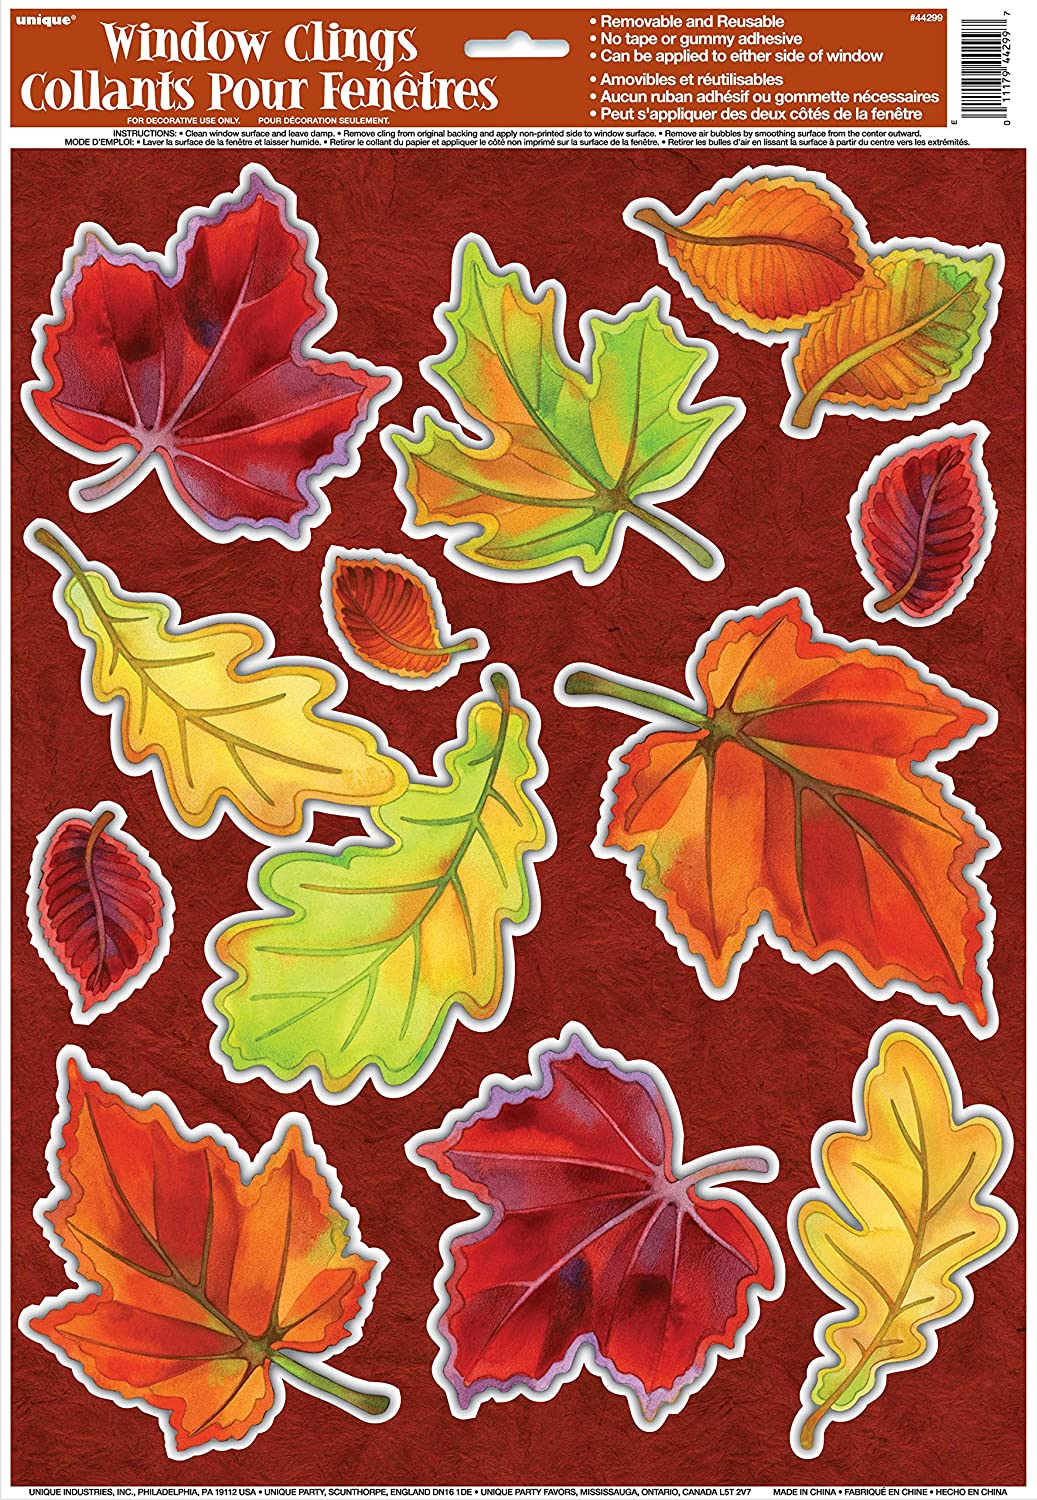 2-Pack Bundle Thanksgiving Wall and Floor Adhesive Decorations Unique Assorted Crisp and Falling Leaves Window Clings Autumn Fall